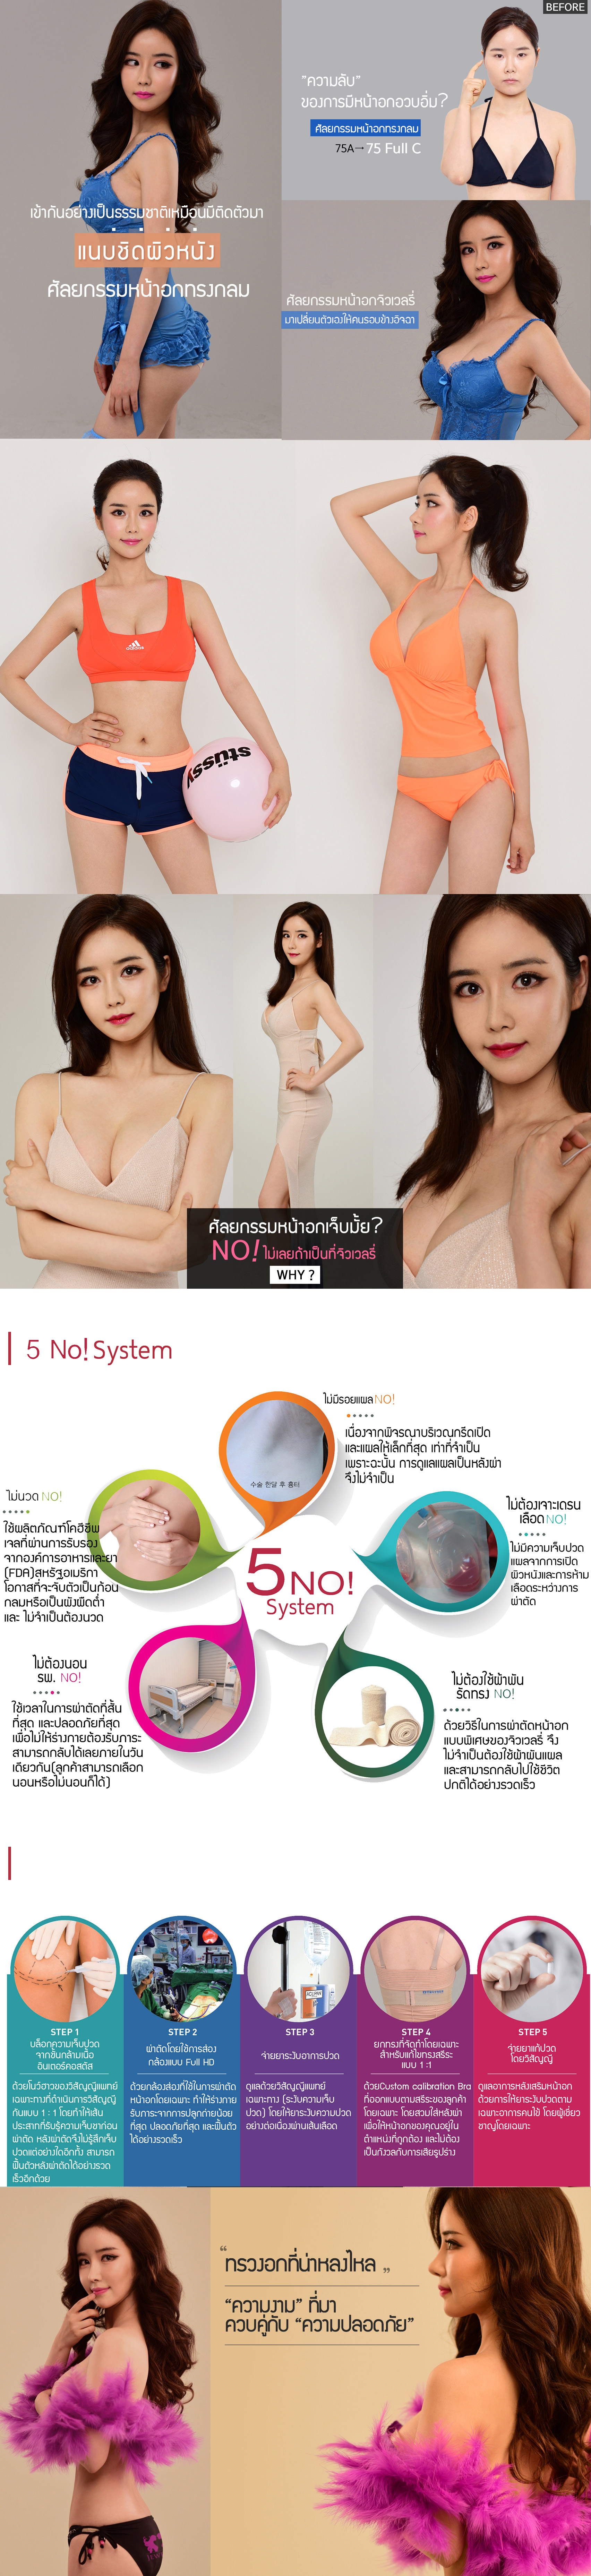 HPbreast-surgery1